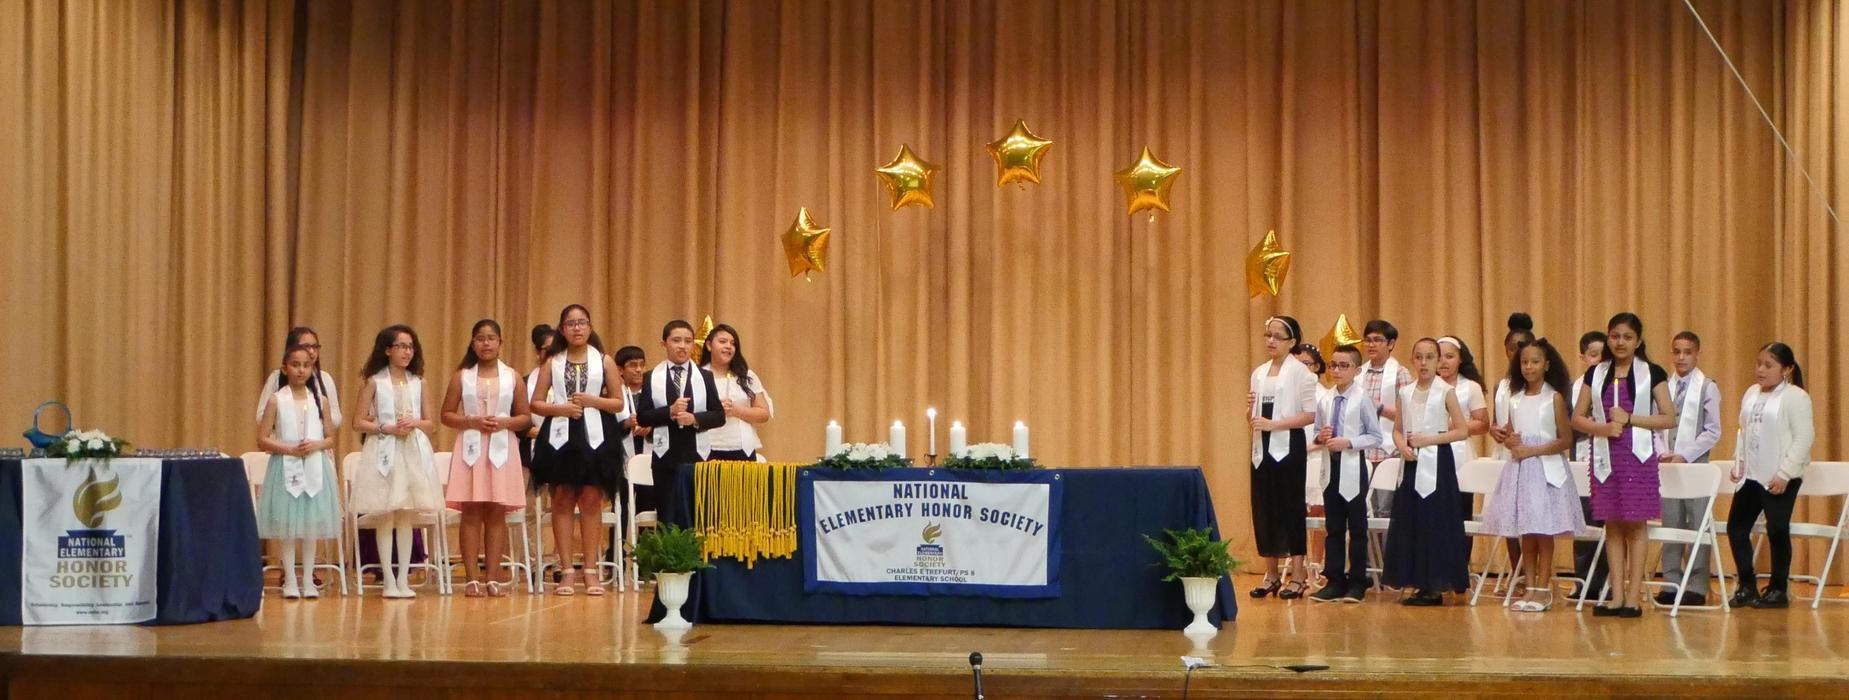 2018 PS8 National Elementary Honor Society inductees stand on the school auditorium stage during the 2018-2019 National Elementary Honor Society induction ceremony.